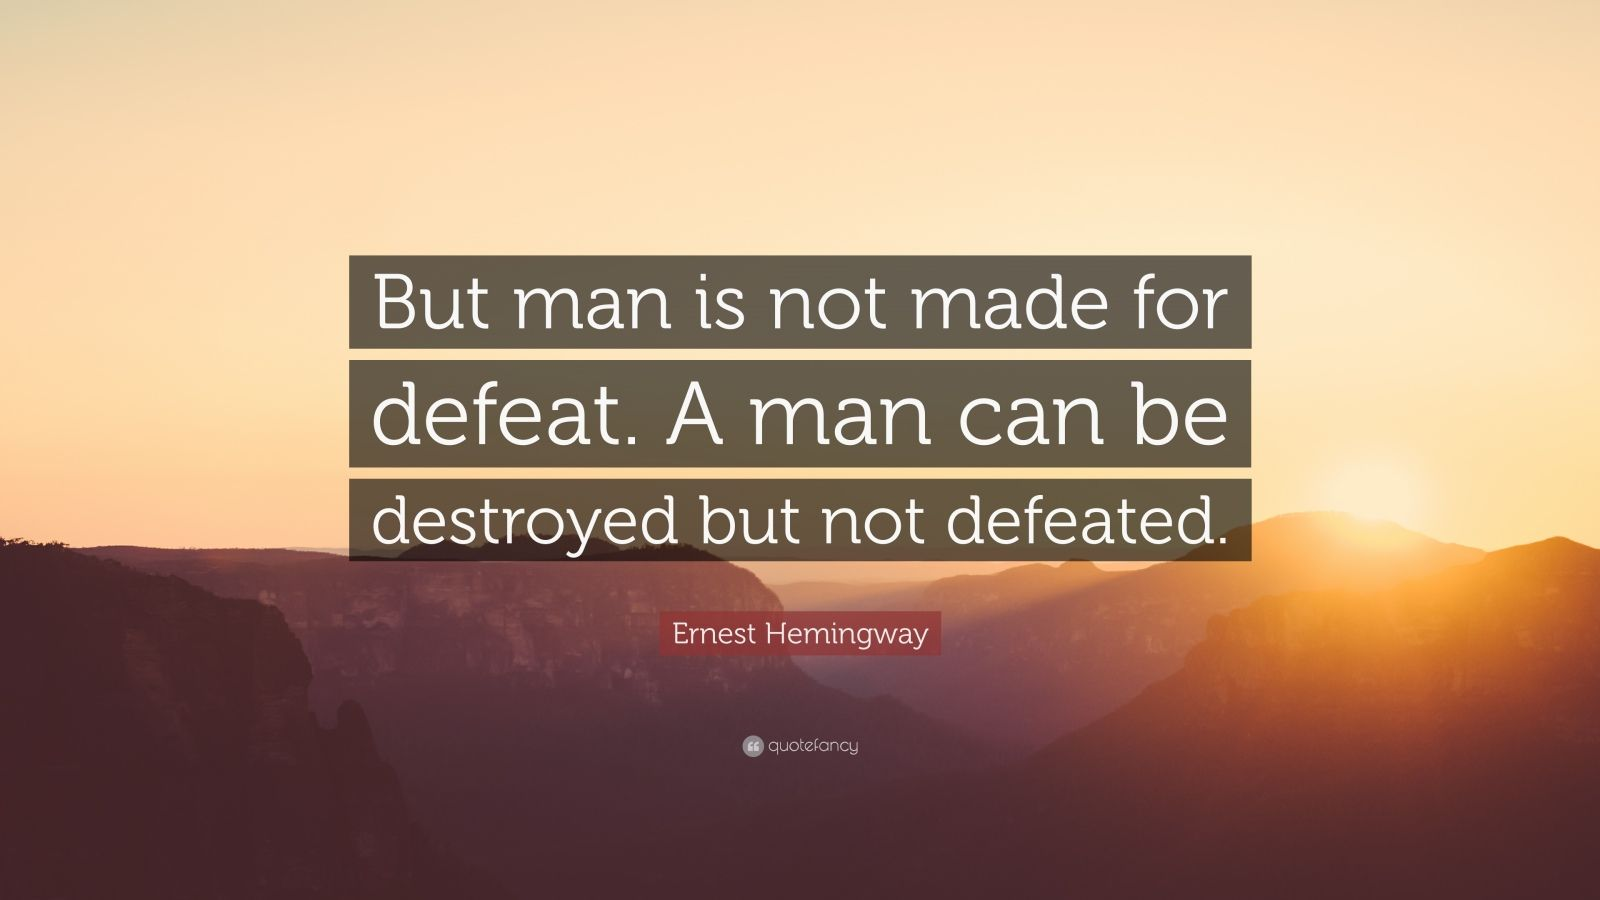 a man can be destroyed but